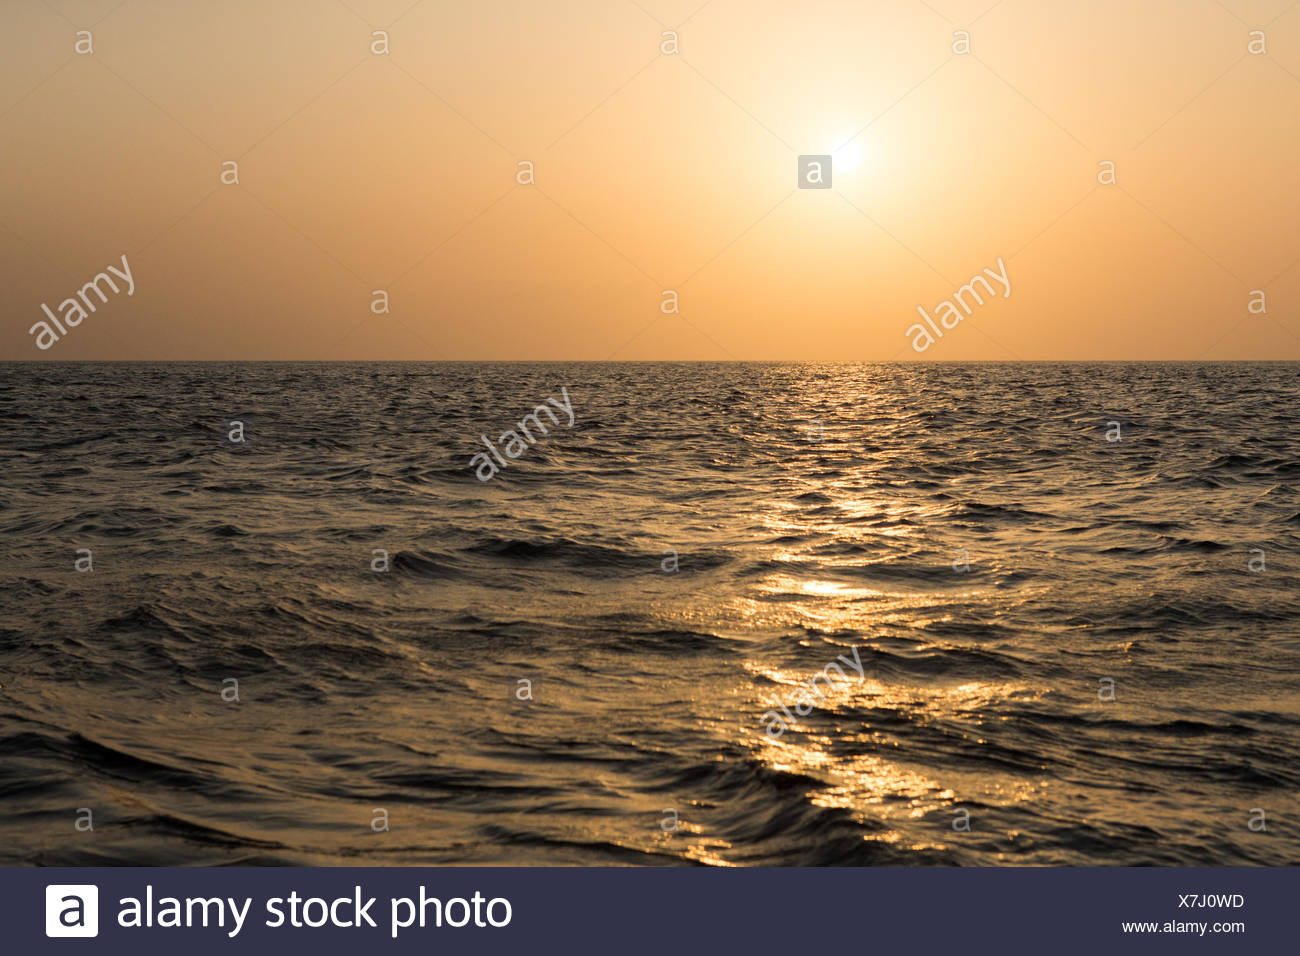 In Gulf of Panama waters,near Bona Island,the sun rises on a misty,hazy morning and reflects light off of choppy waters. - Stock Image